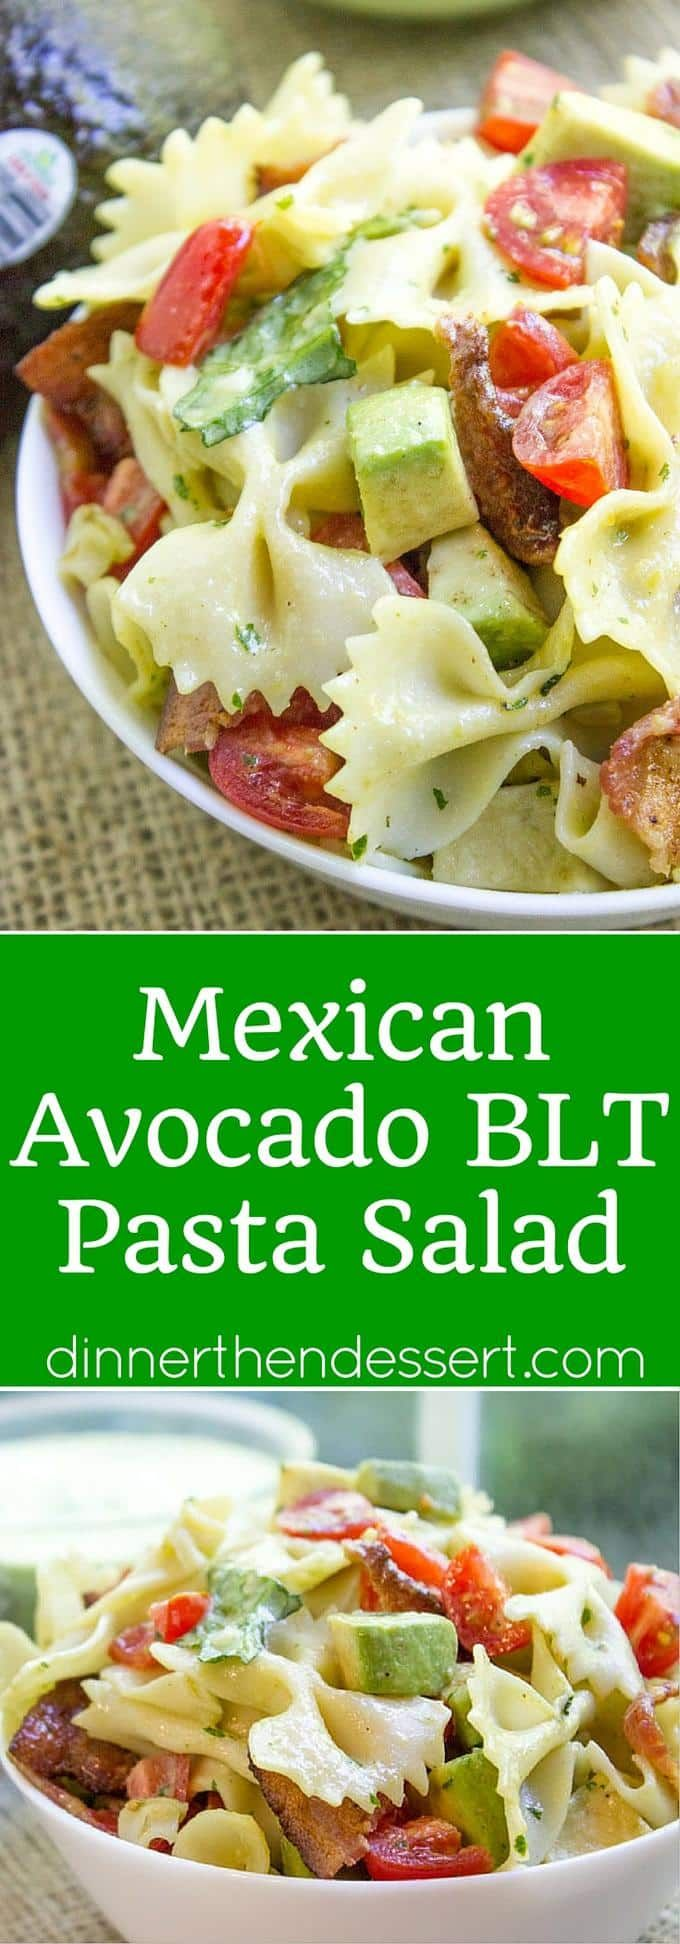 BLT Pasta Salad with avocados blended into a cilantro lime dressing ...